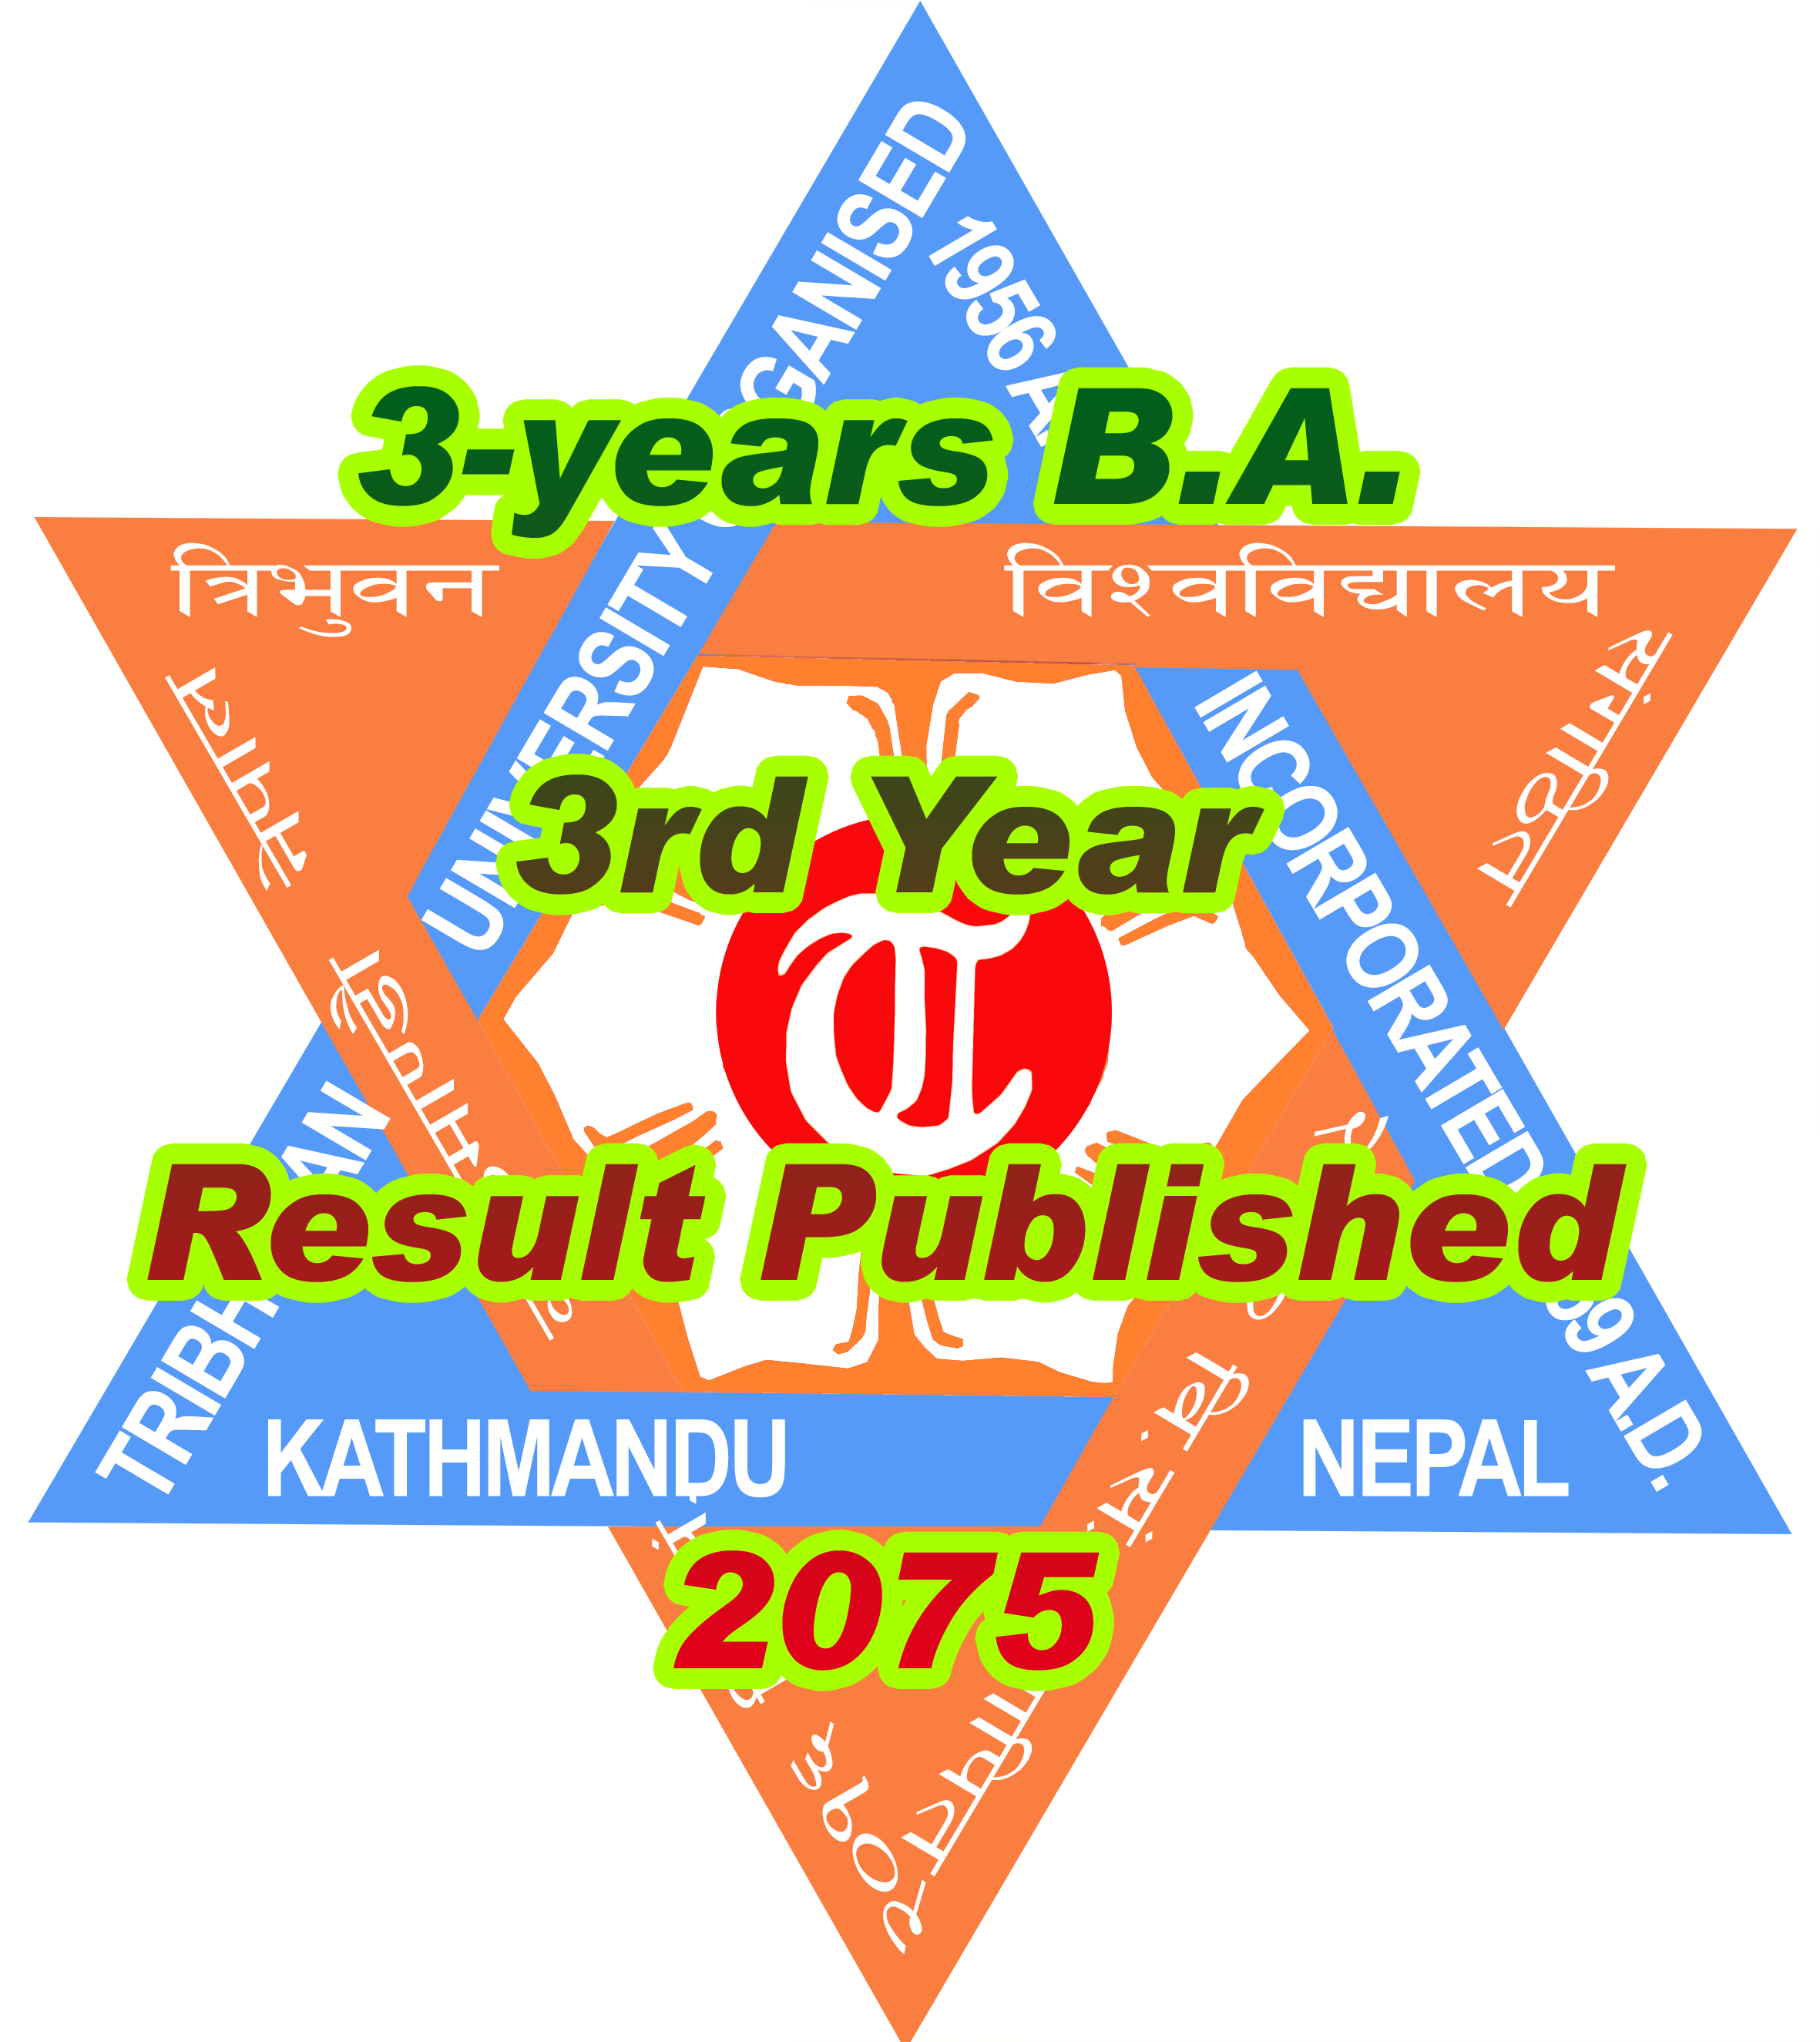 ba 3yrs result 2075 published